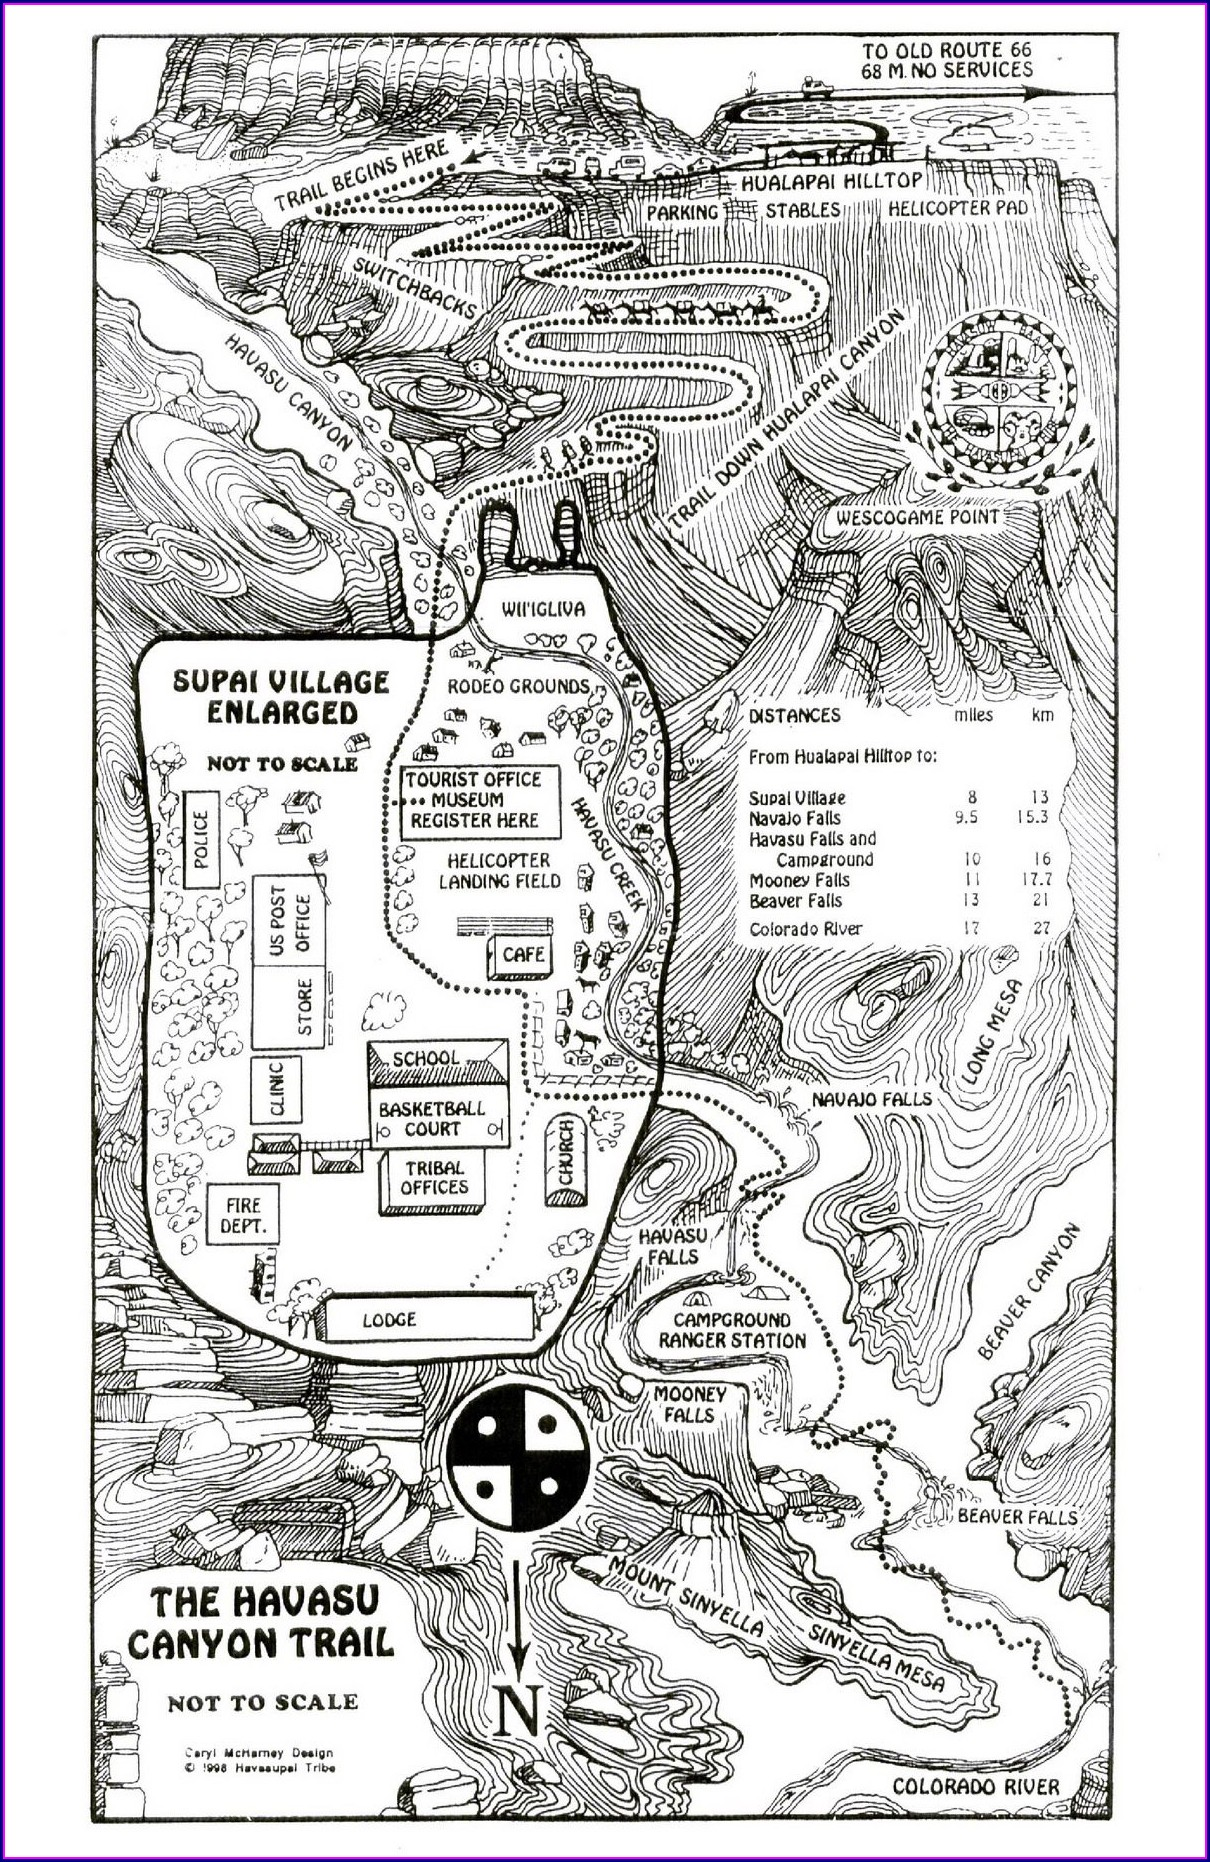 Havasupai Falls Trail Map